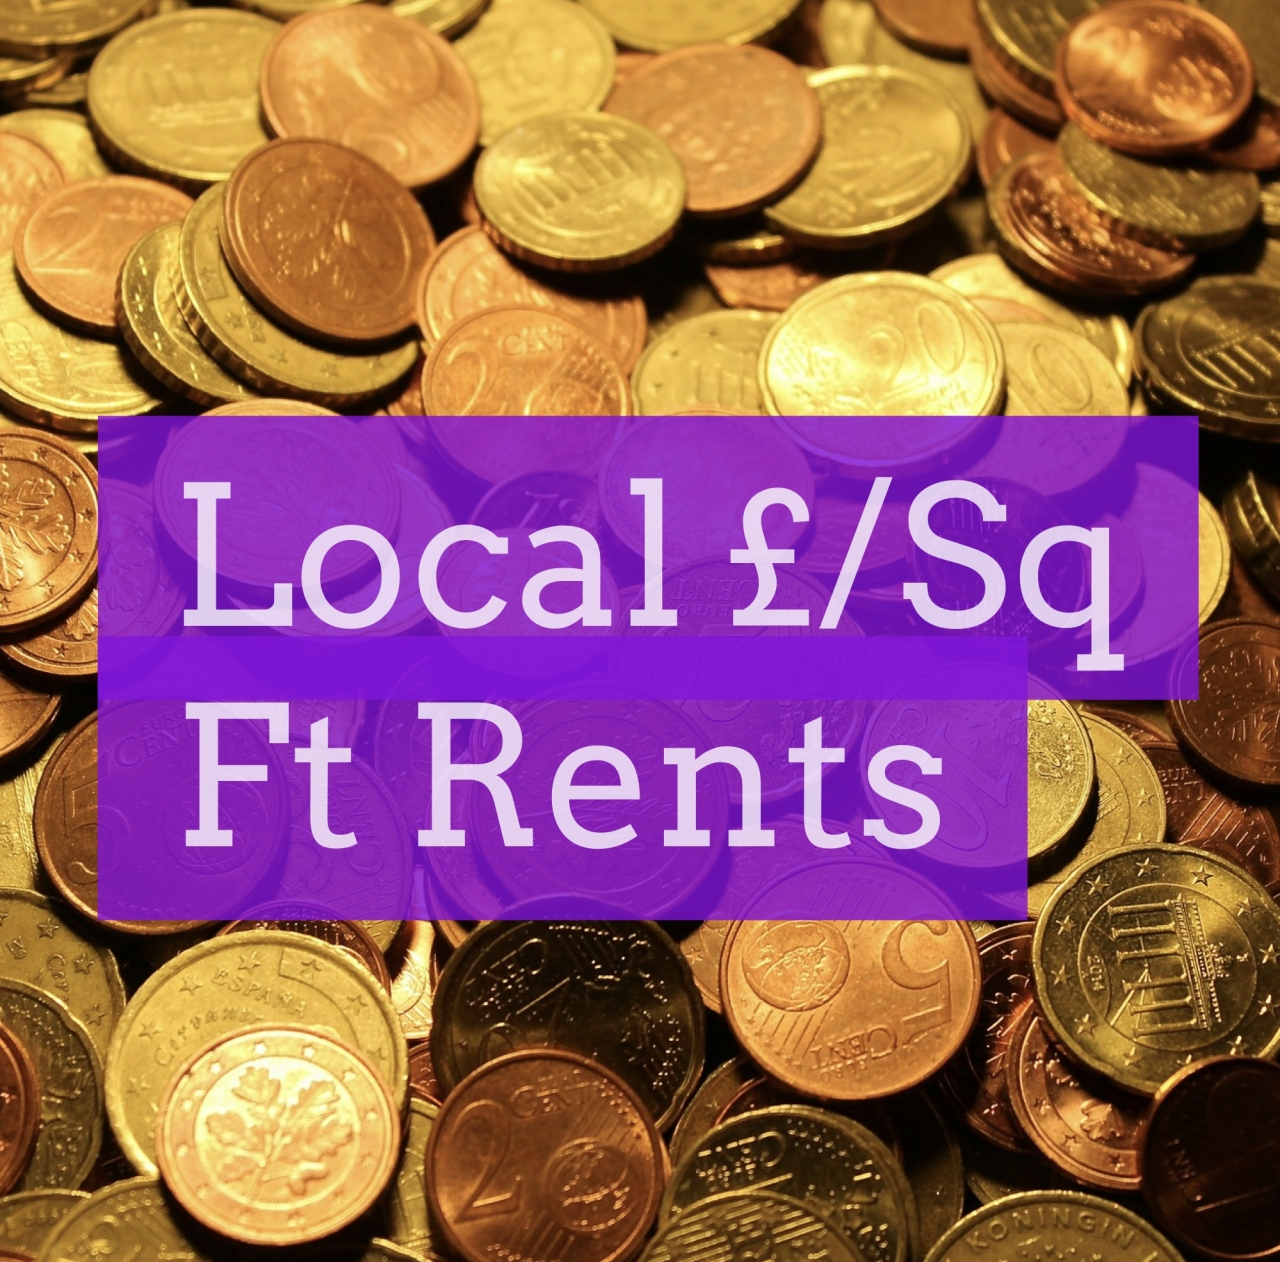 >Sidcup Private Rents Hit